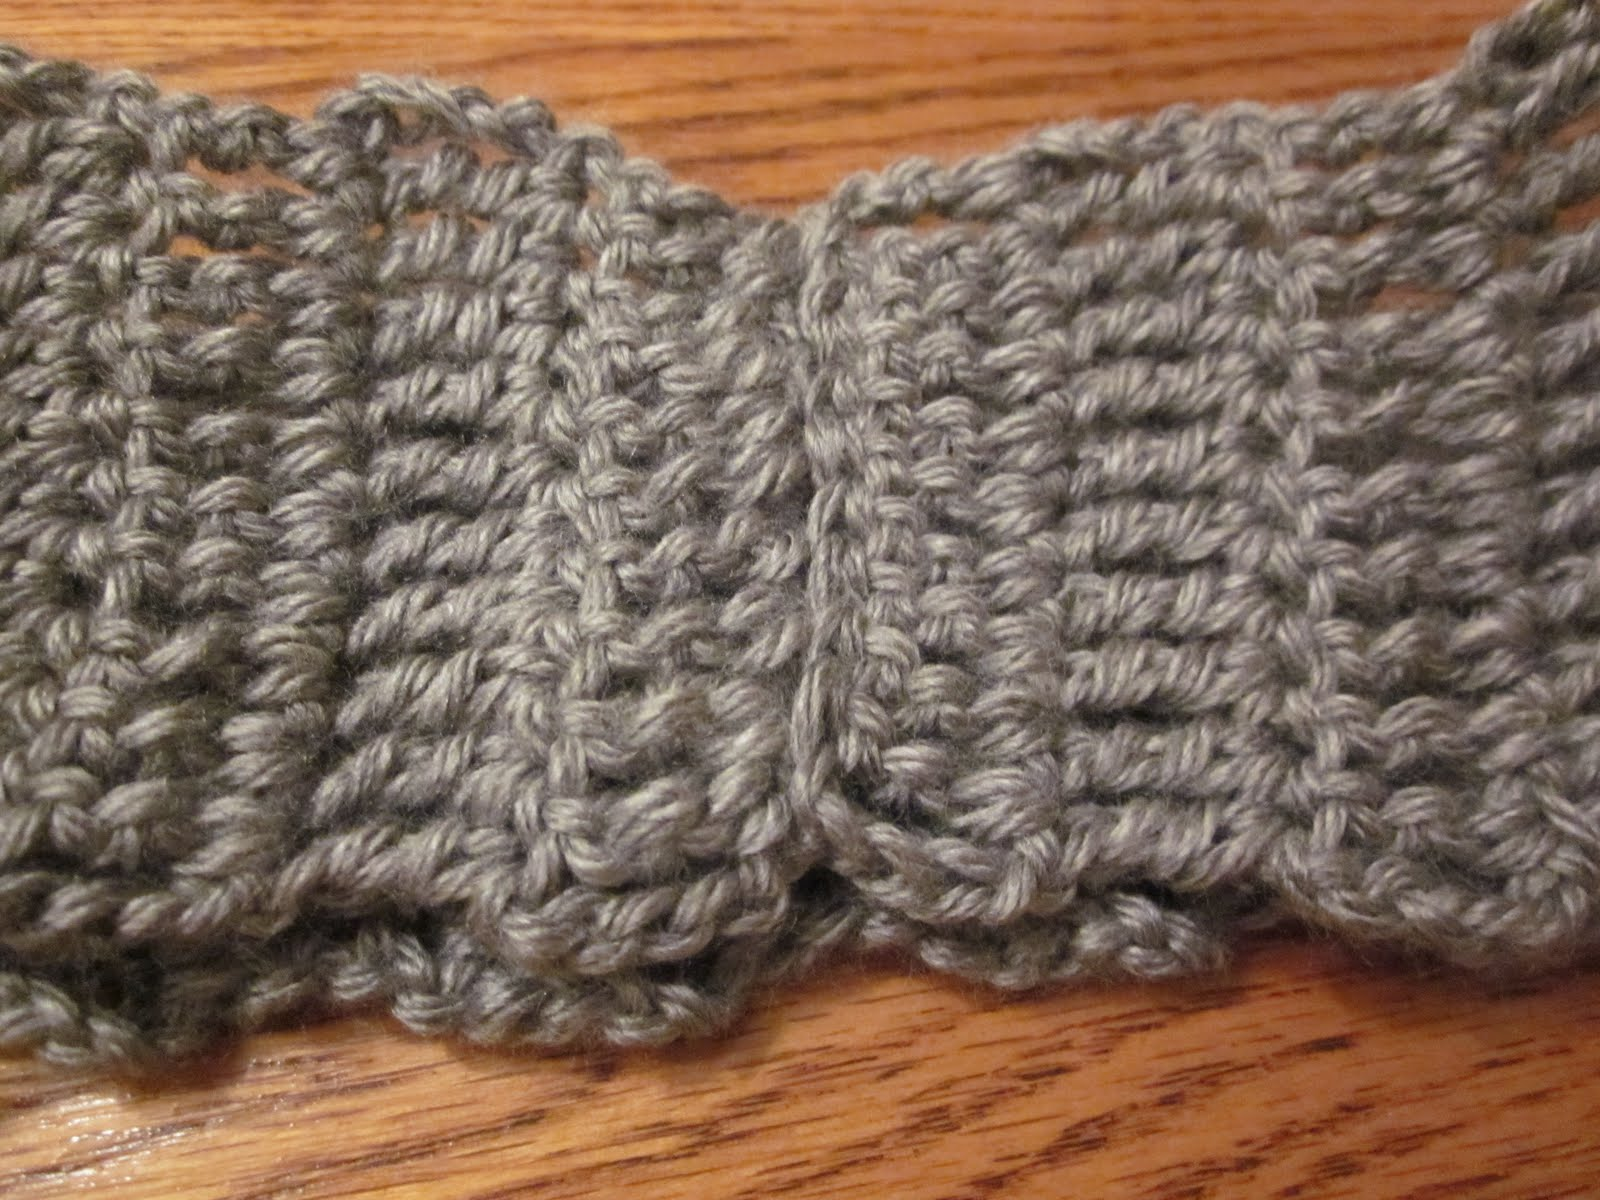 Crochet Ear Warmer : The Crafty Novice: Simple Crochet Ear Warmer